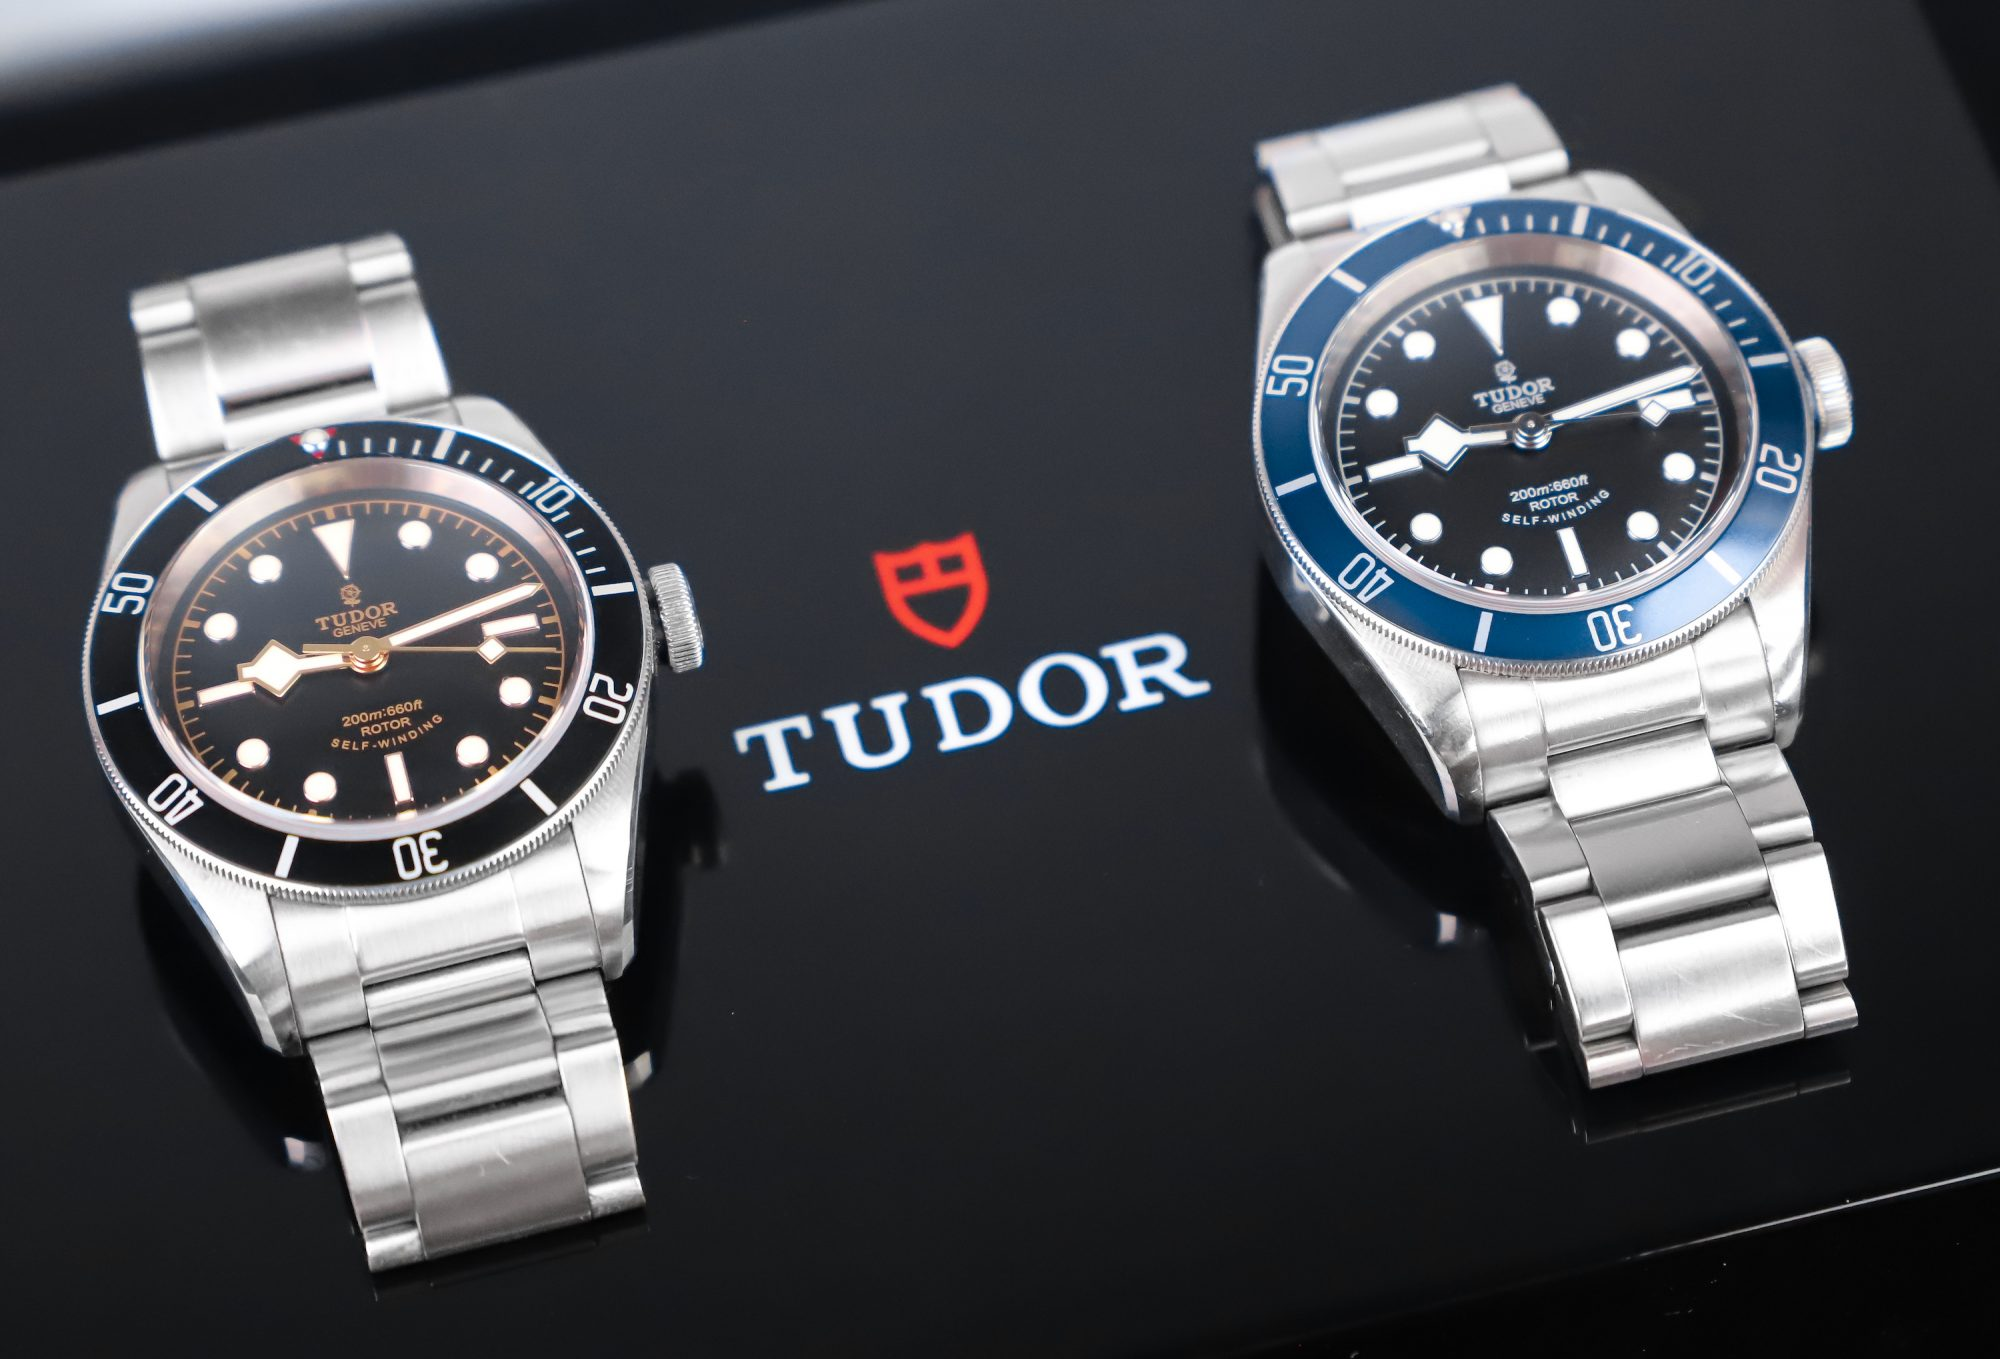 Tudor Black Bay 79220N vs 79220B